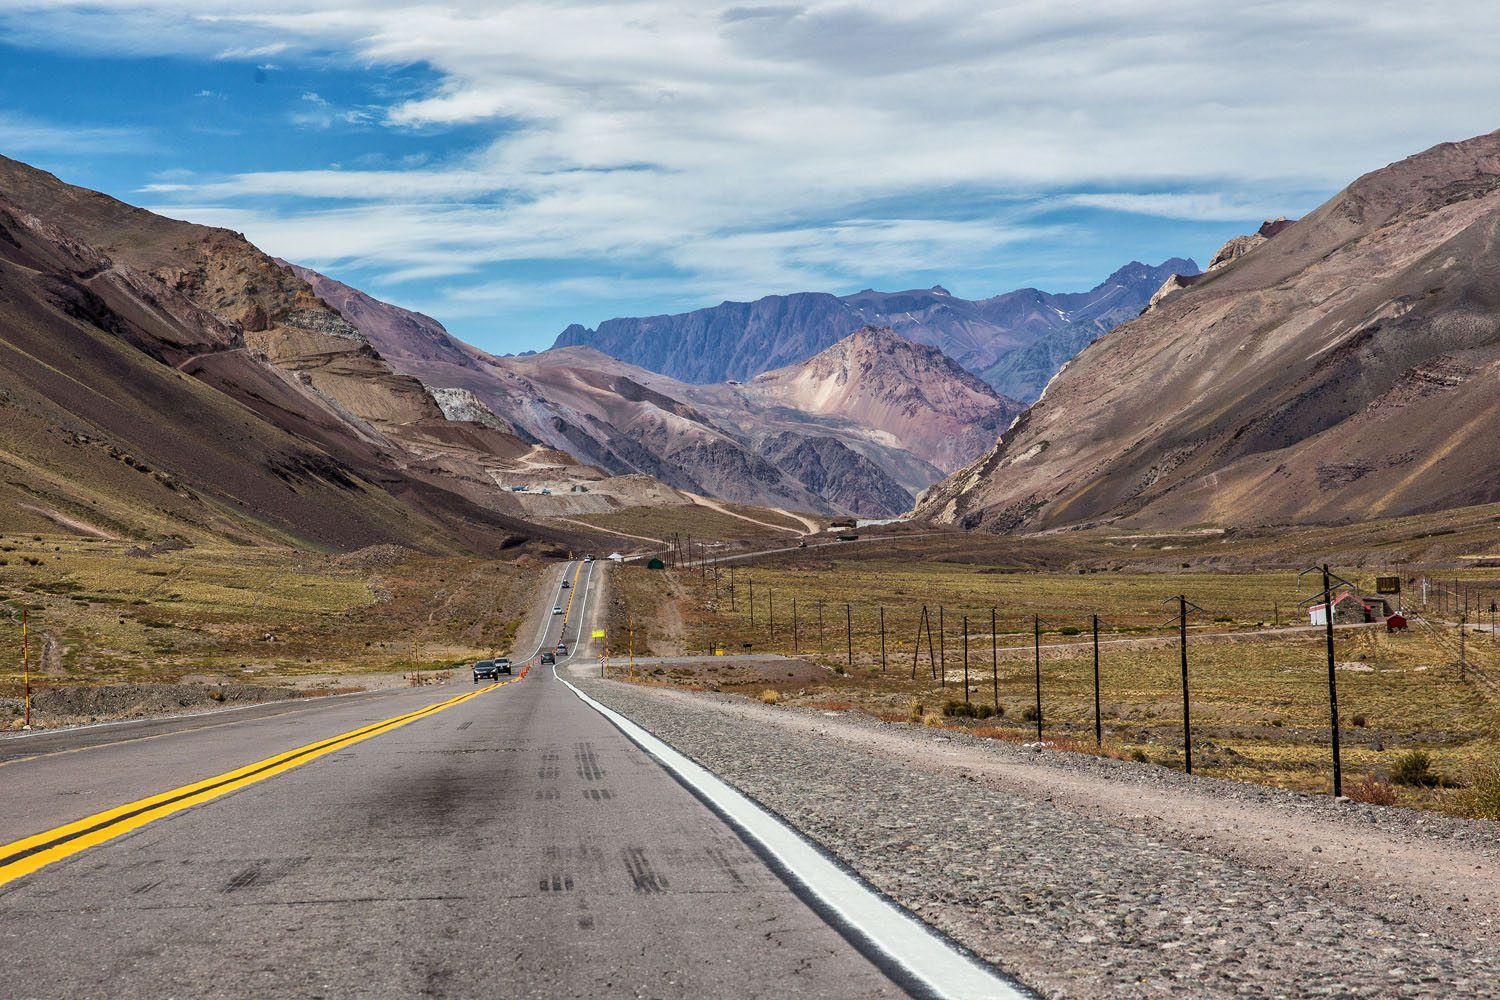 Driving over the Andes Mountains